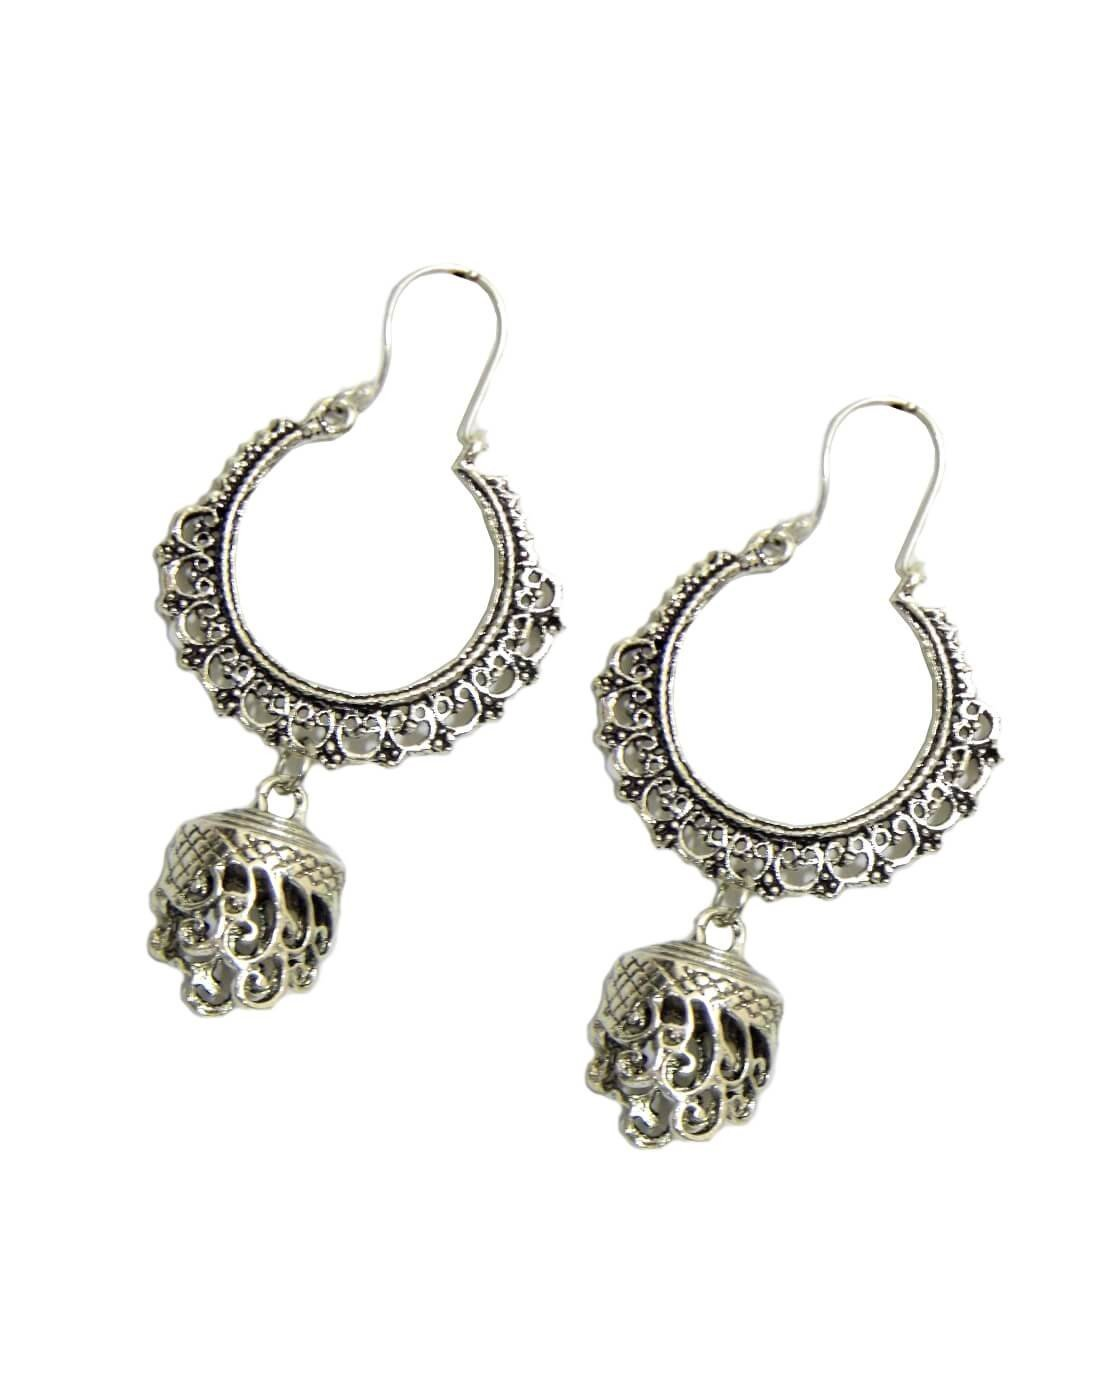 German Silver Chandbali Earrings